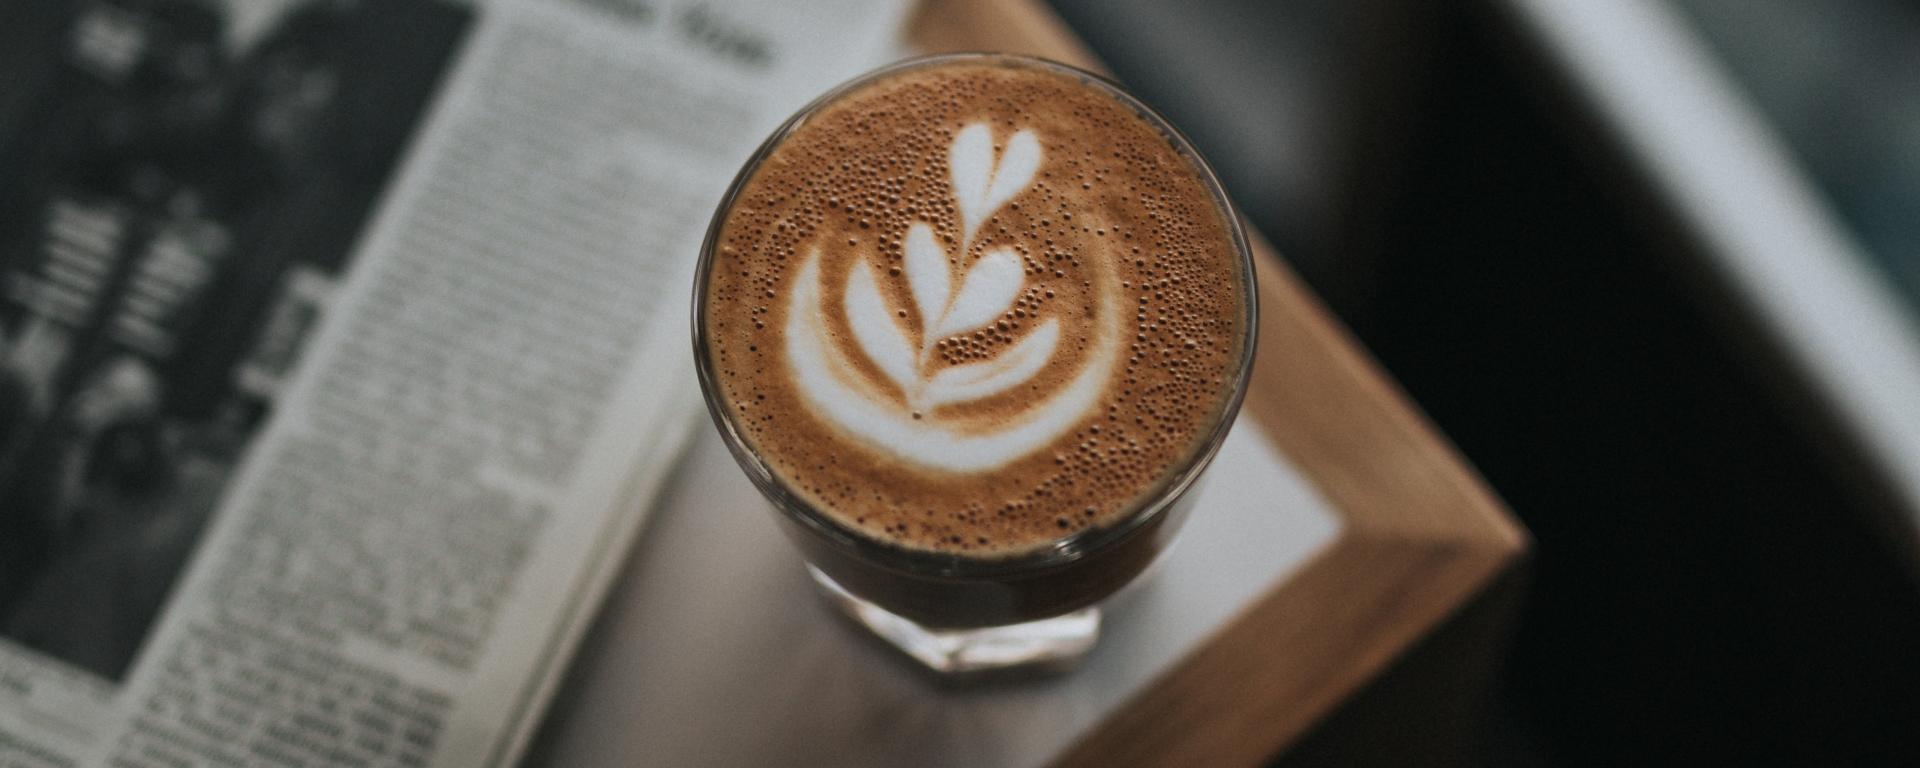 An image of a latte with froth art, sitting on a table next to a newspaper.